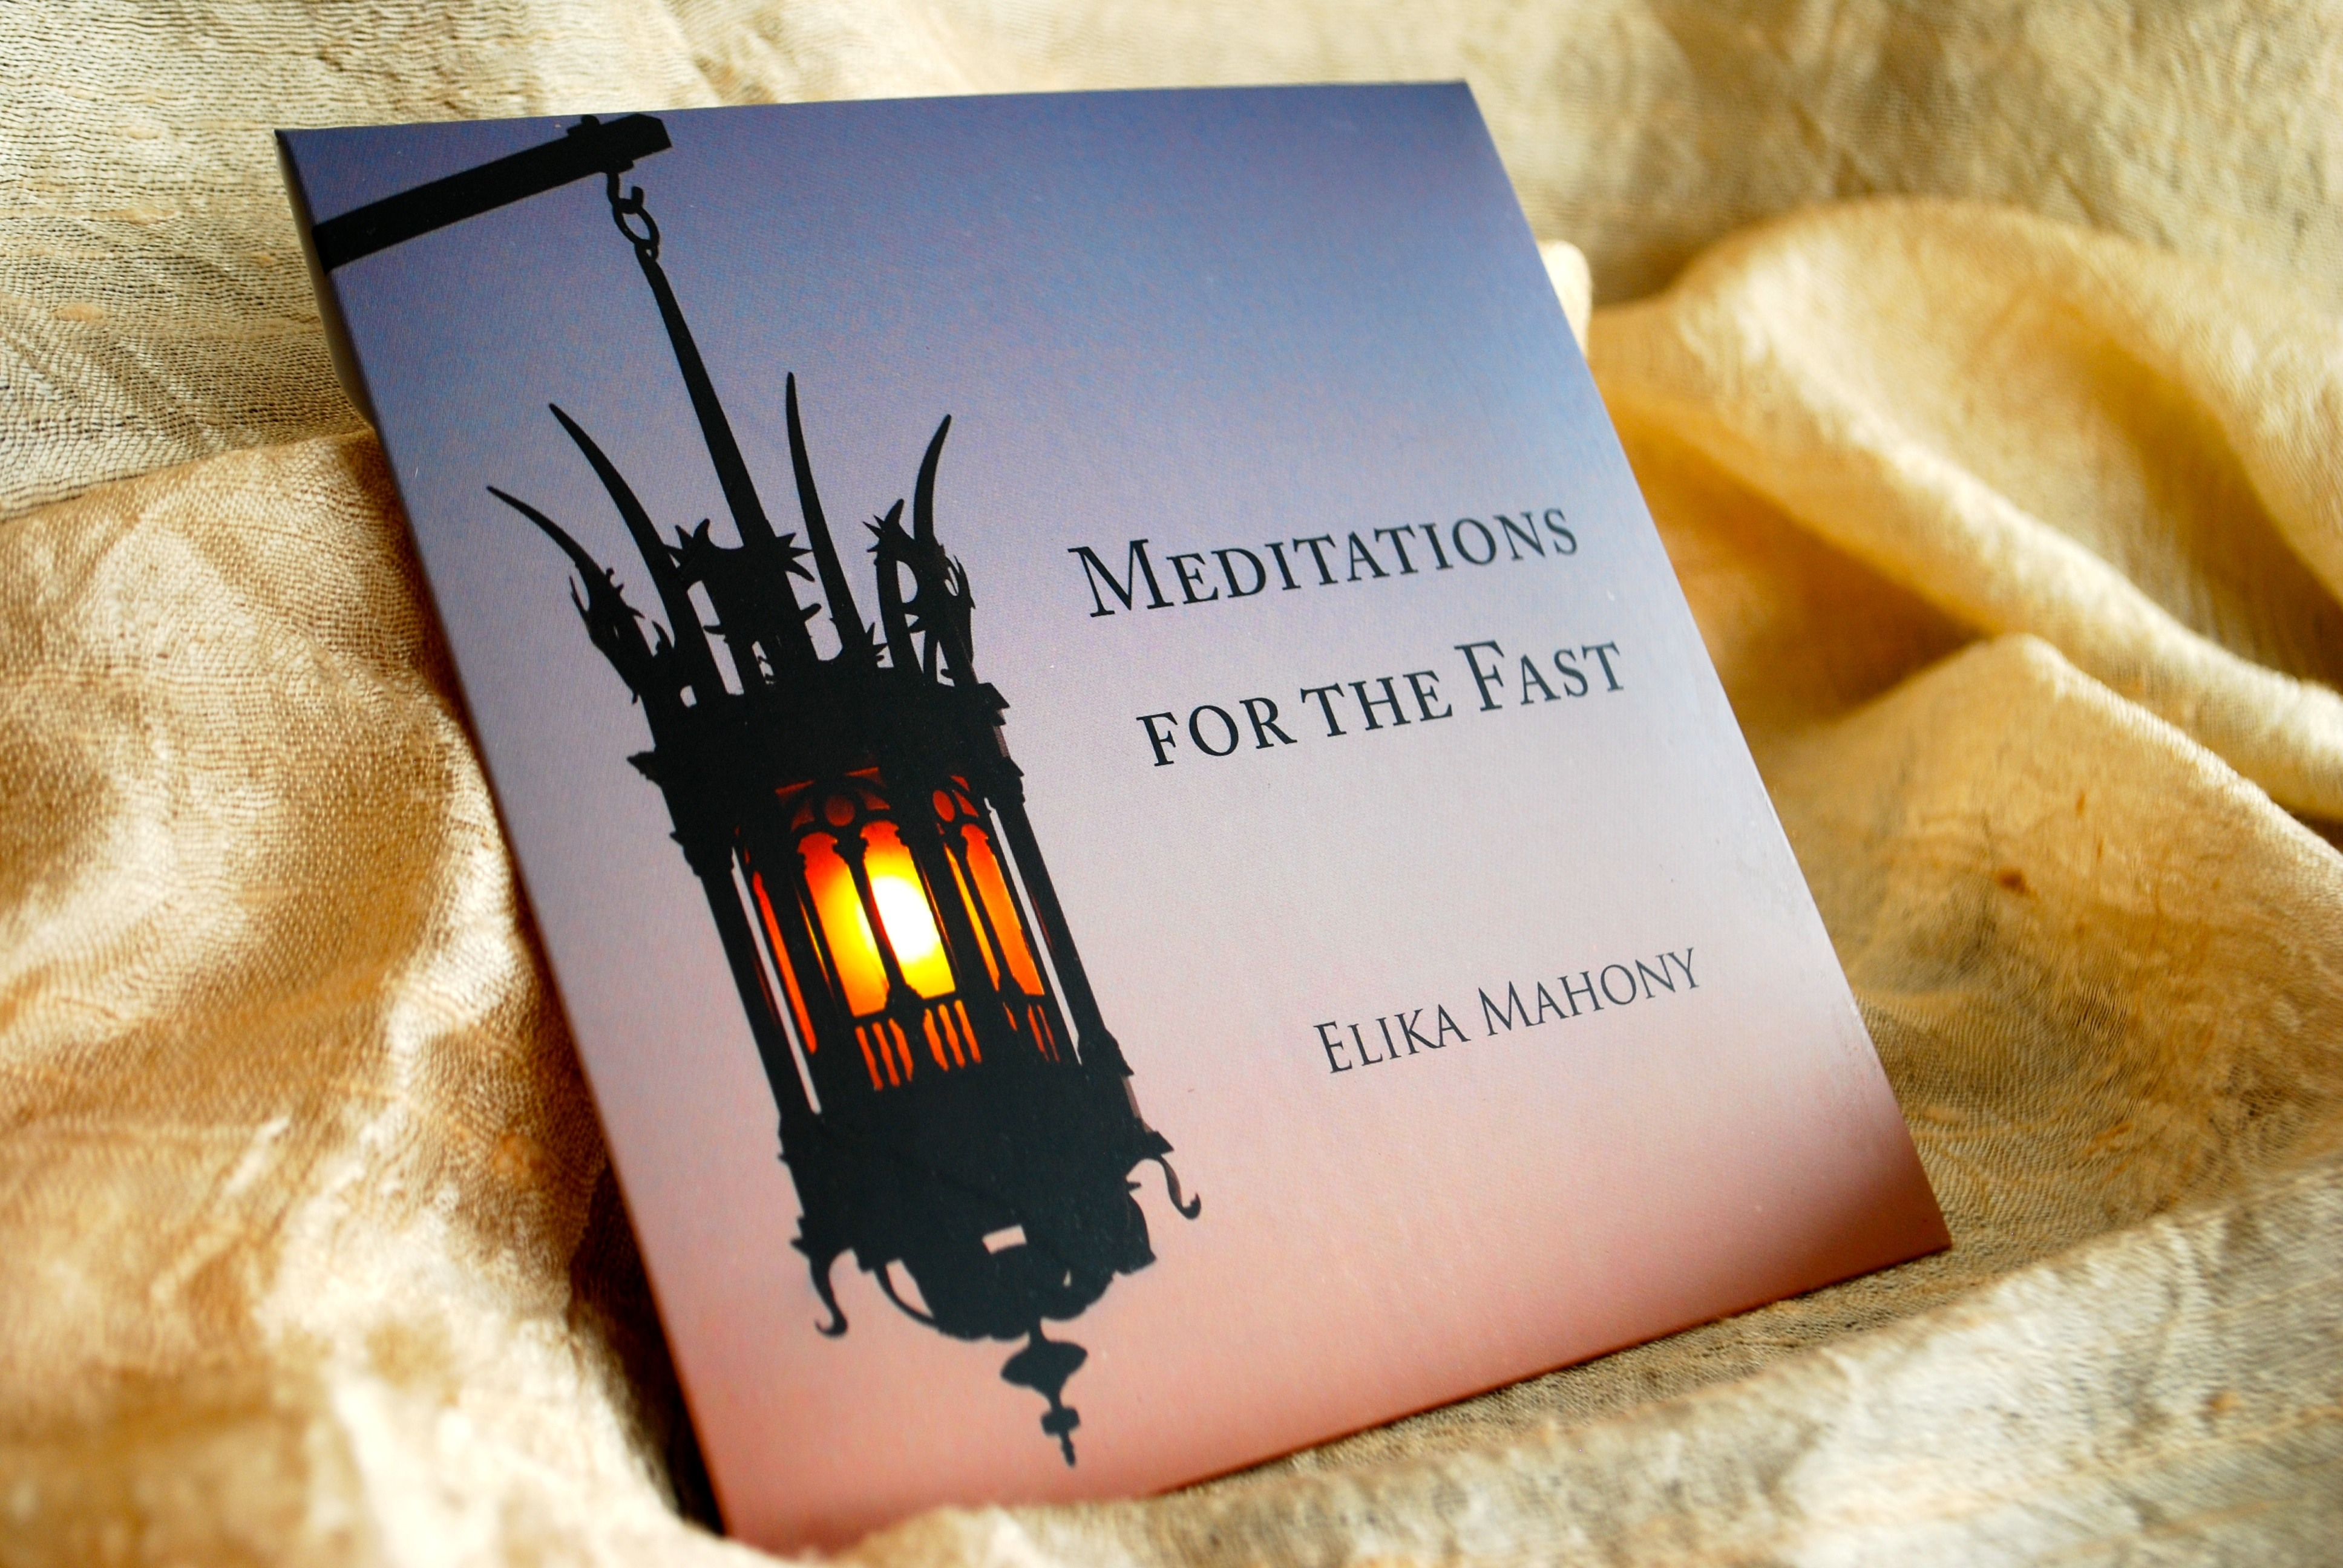 Music for the Bahai Fast